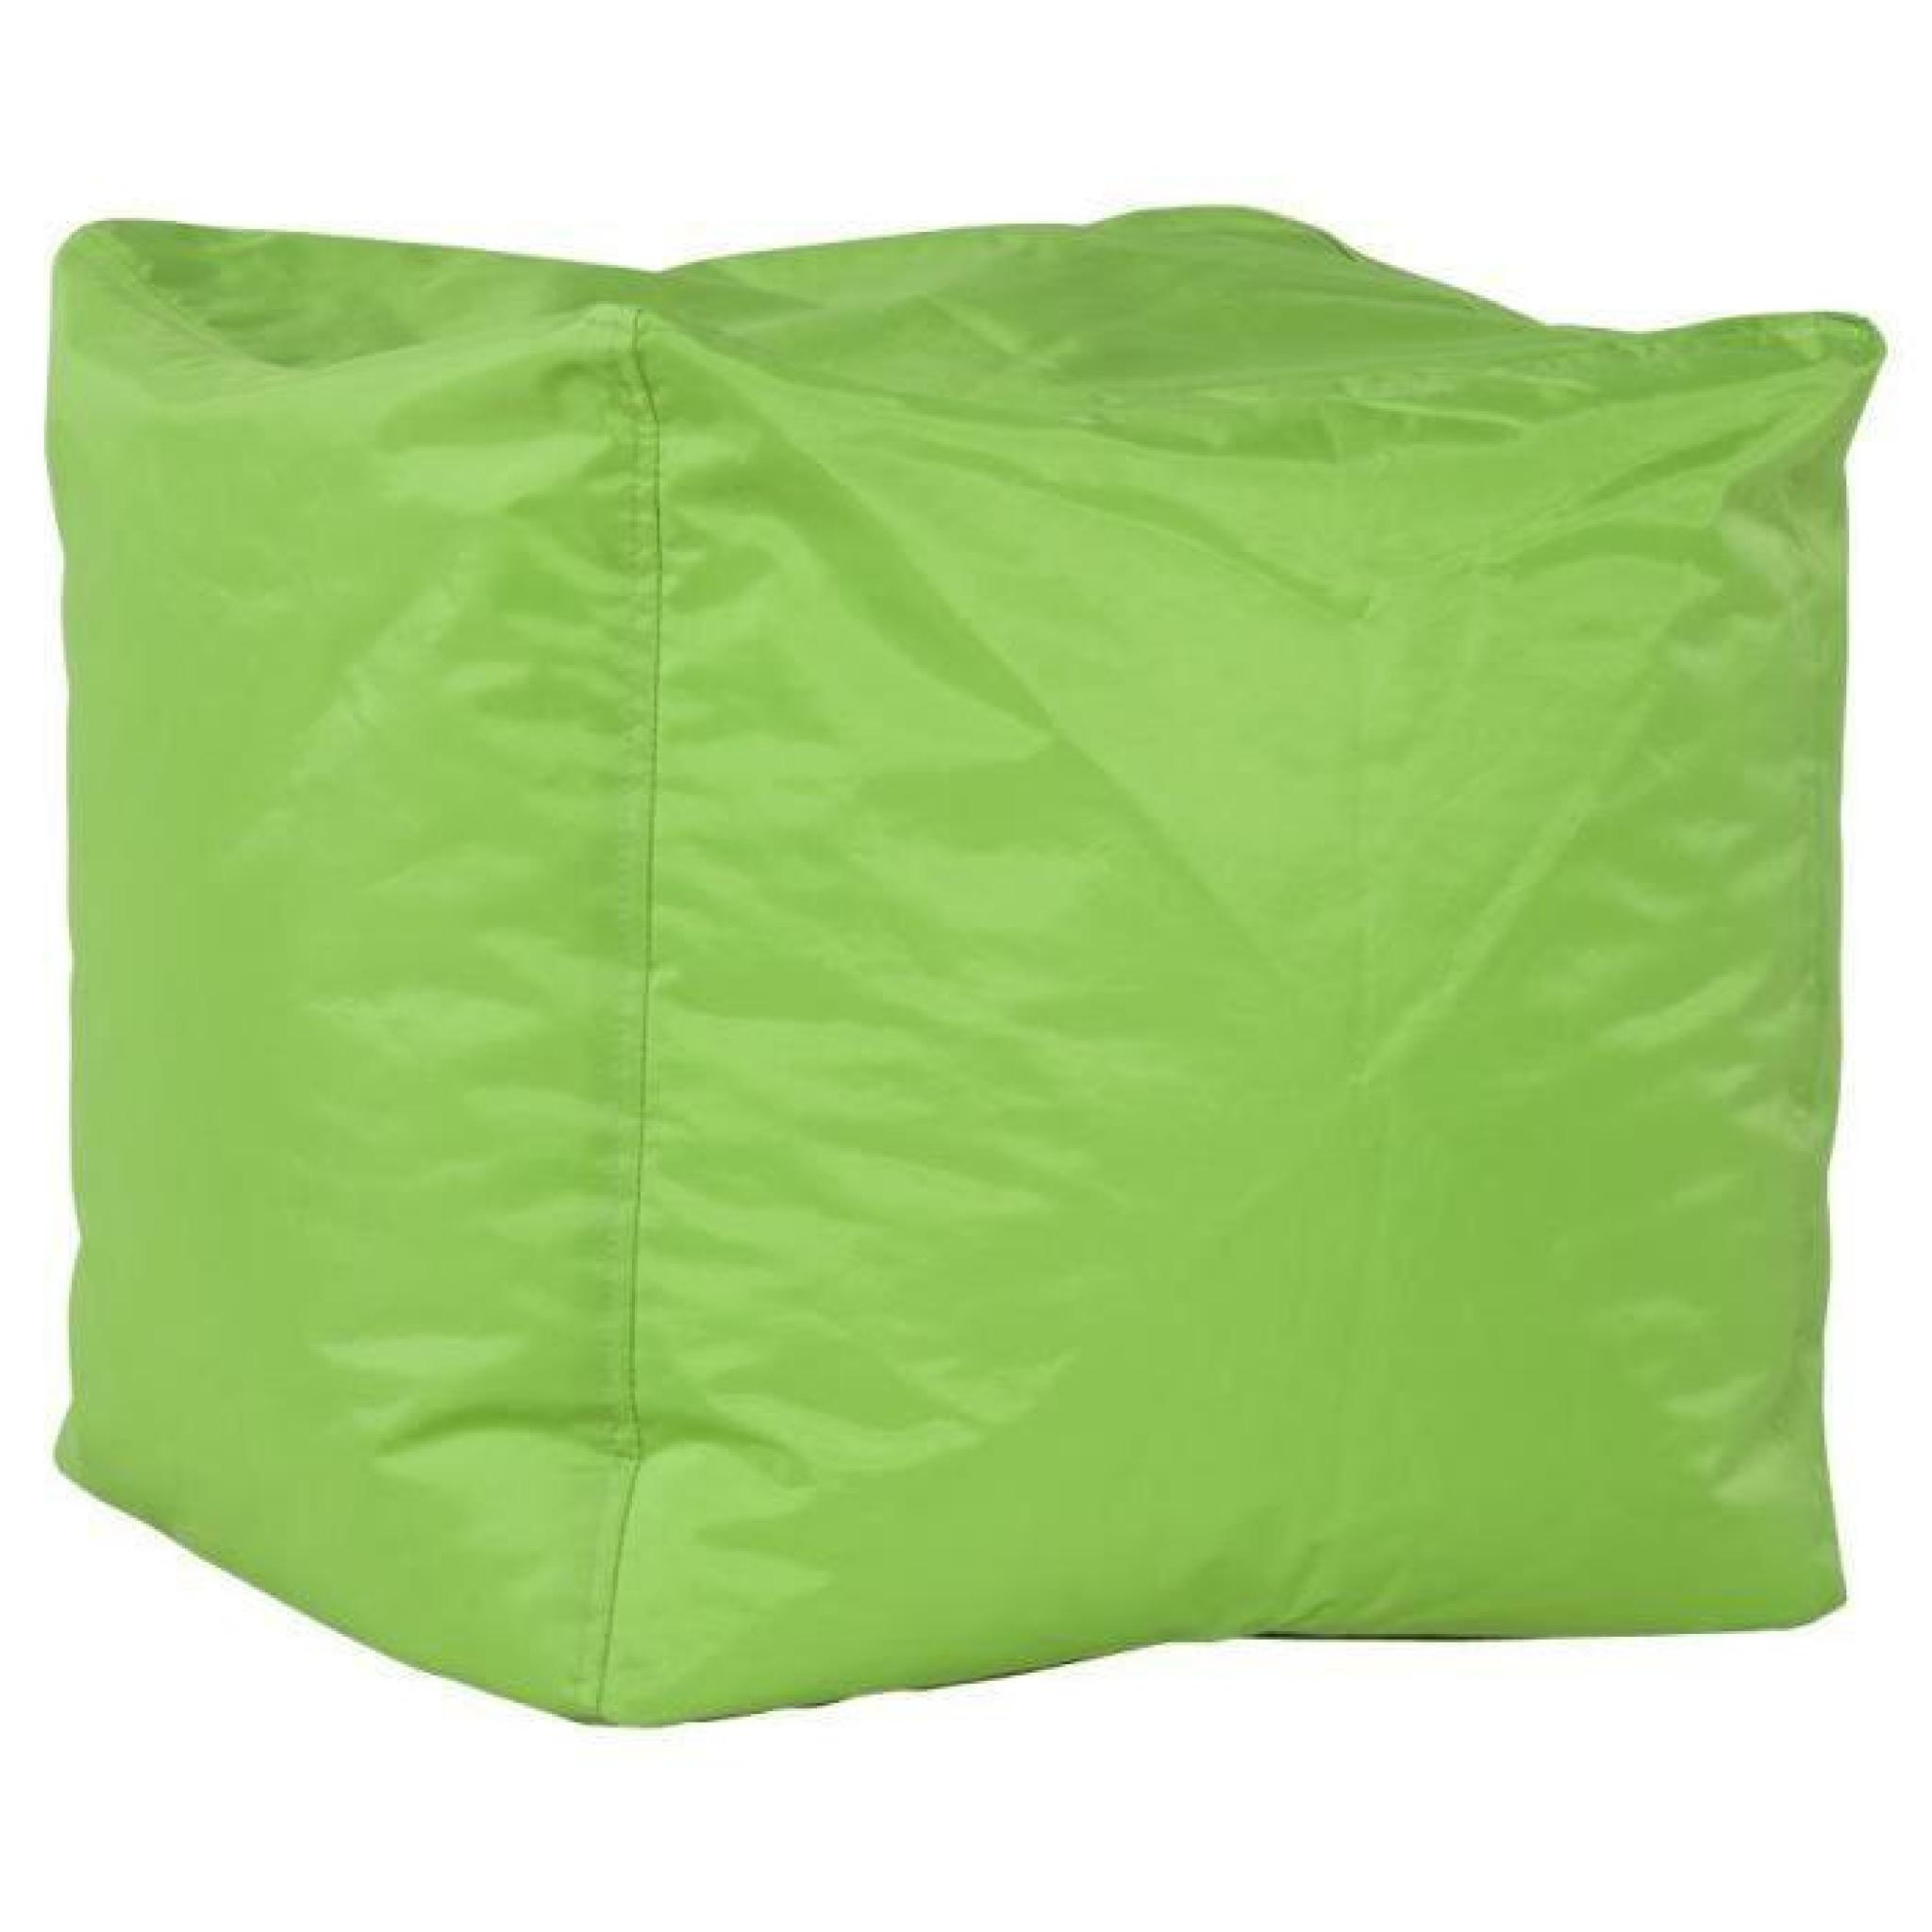 Pouf d'appoint 'EASY' vert